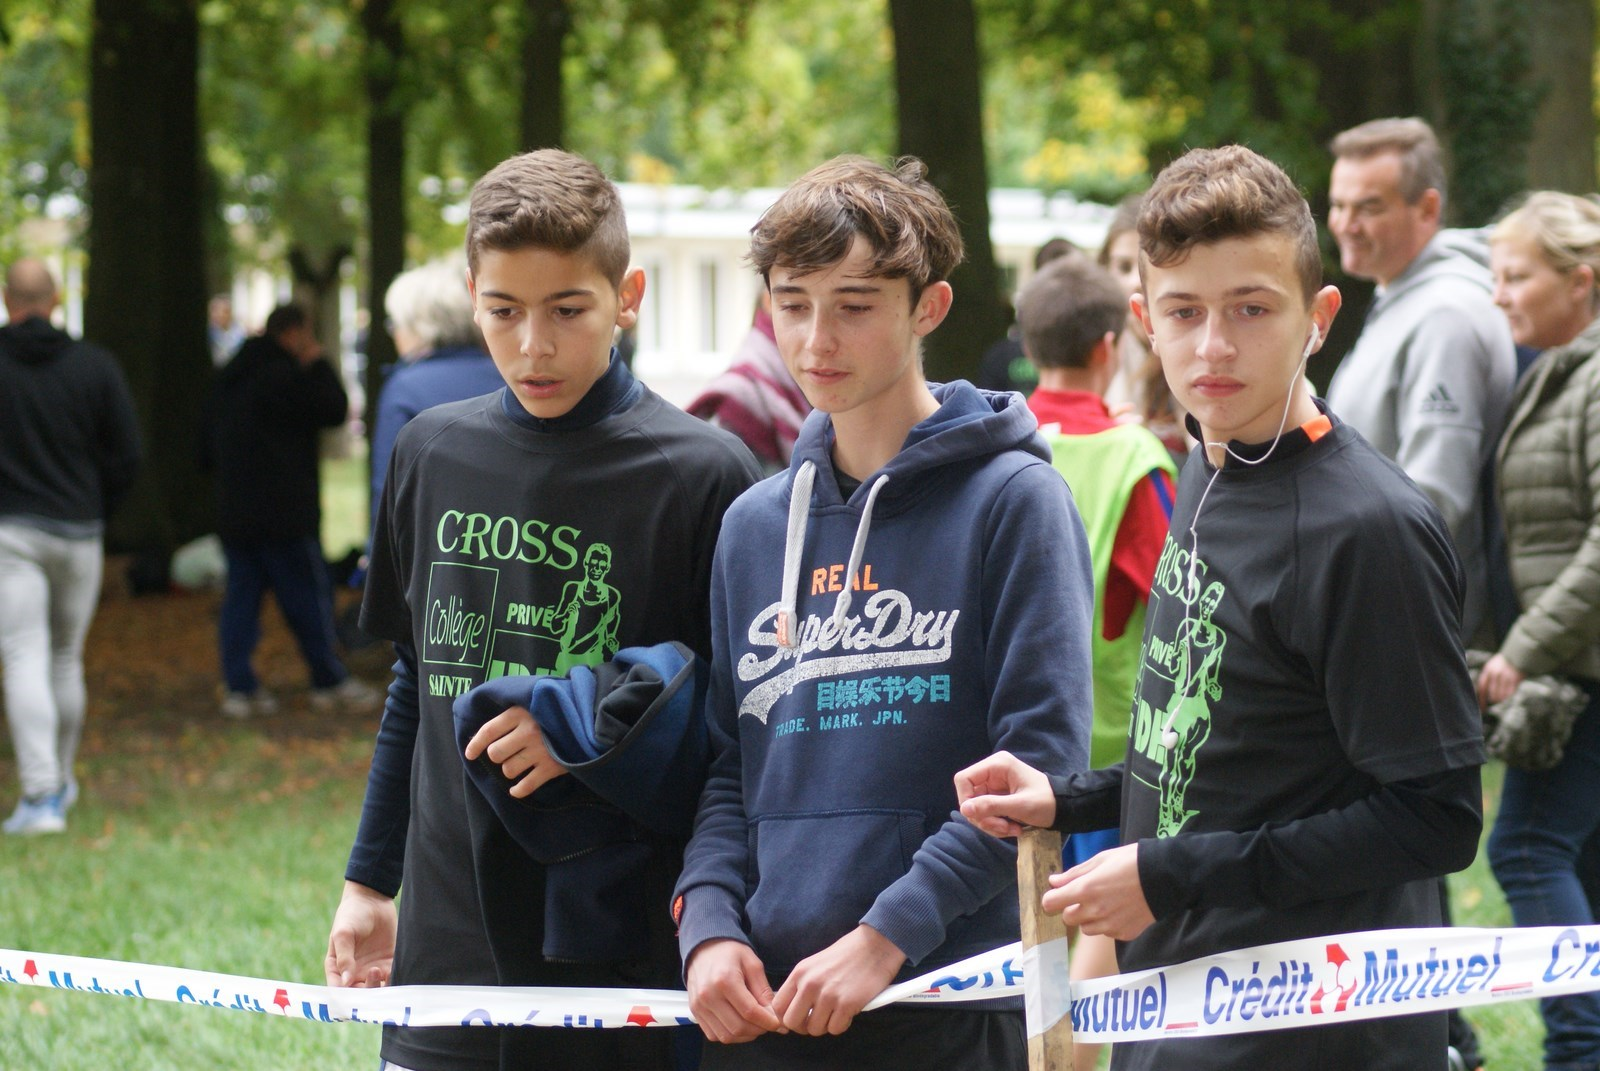 cross 11102017 Bouvigny 38